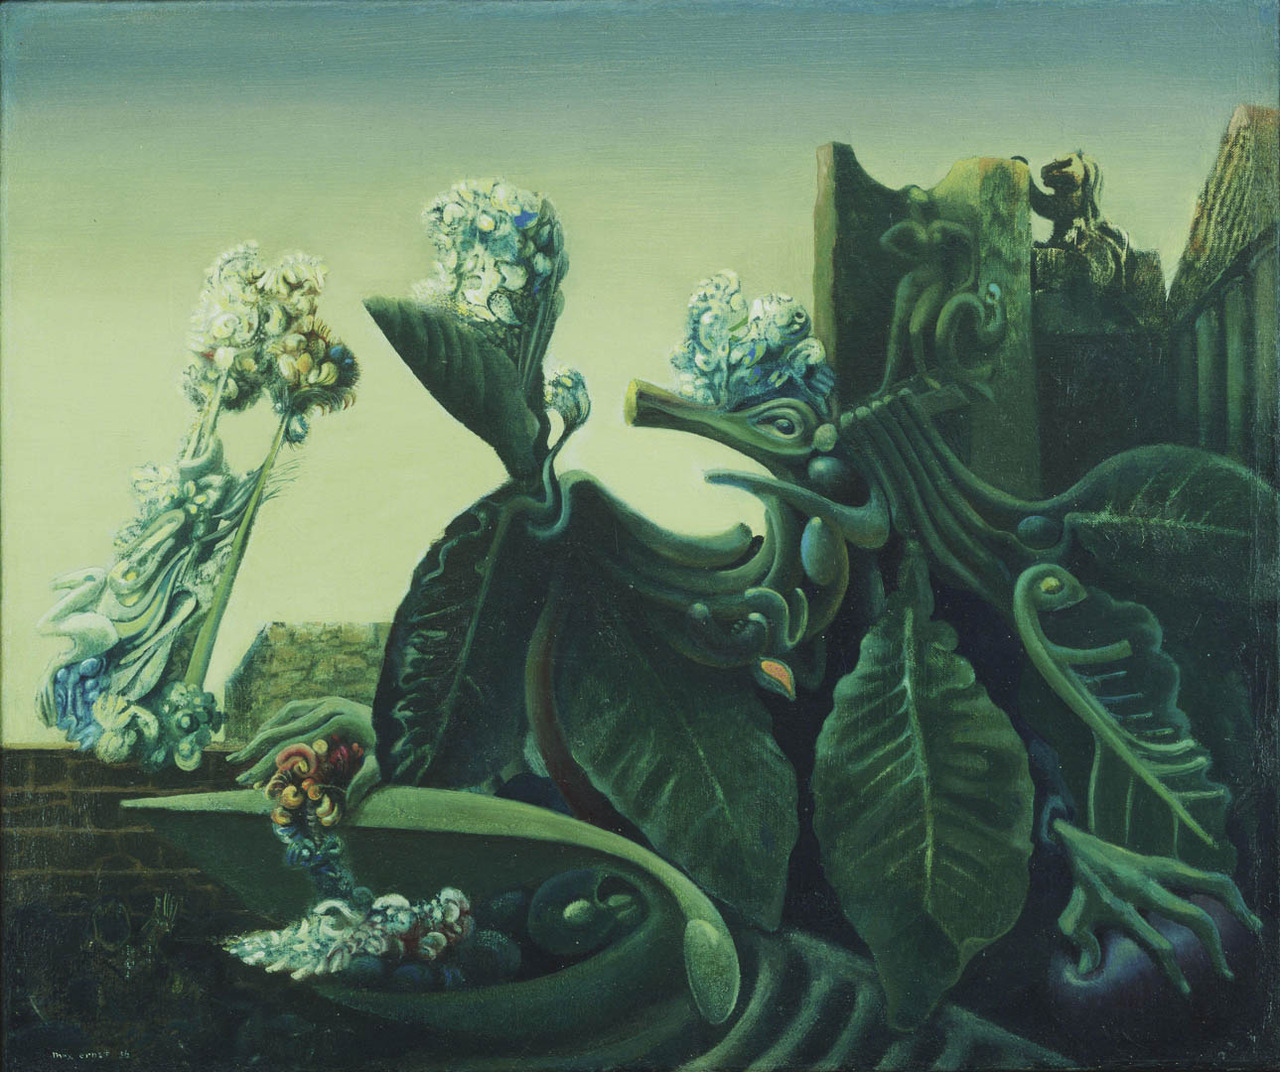 Max Ernst, The Nymph Echo, 1936